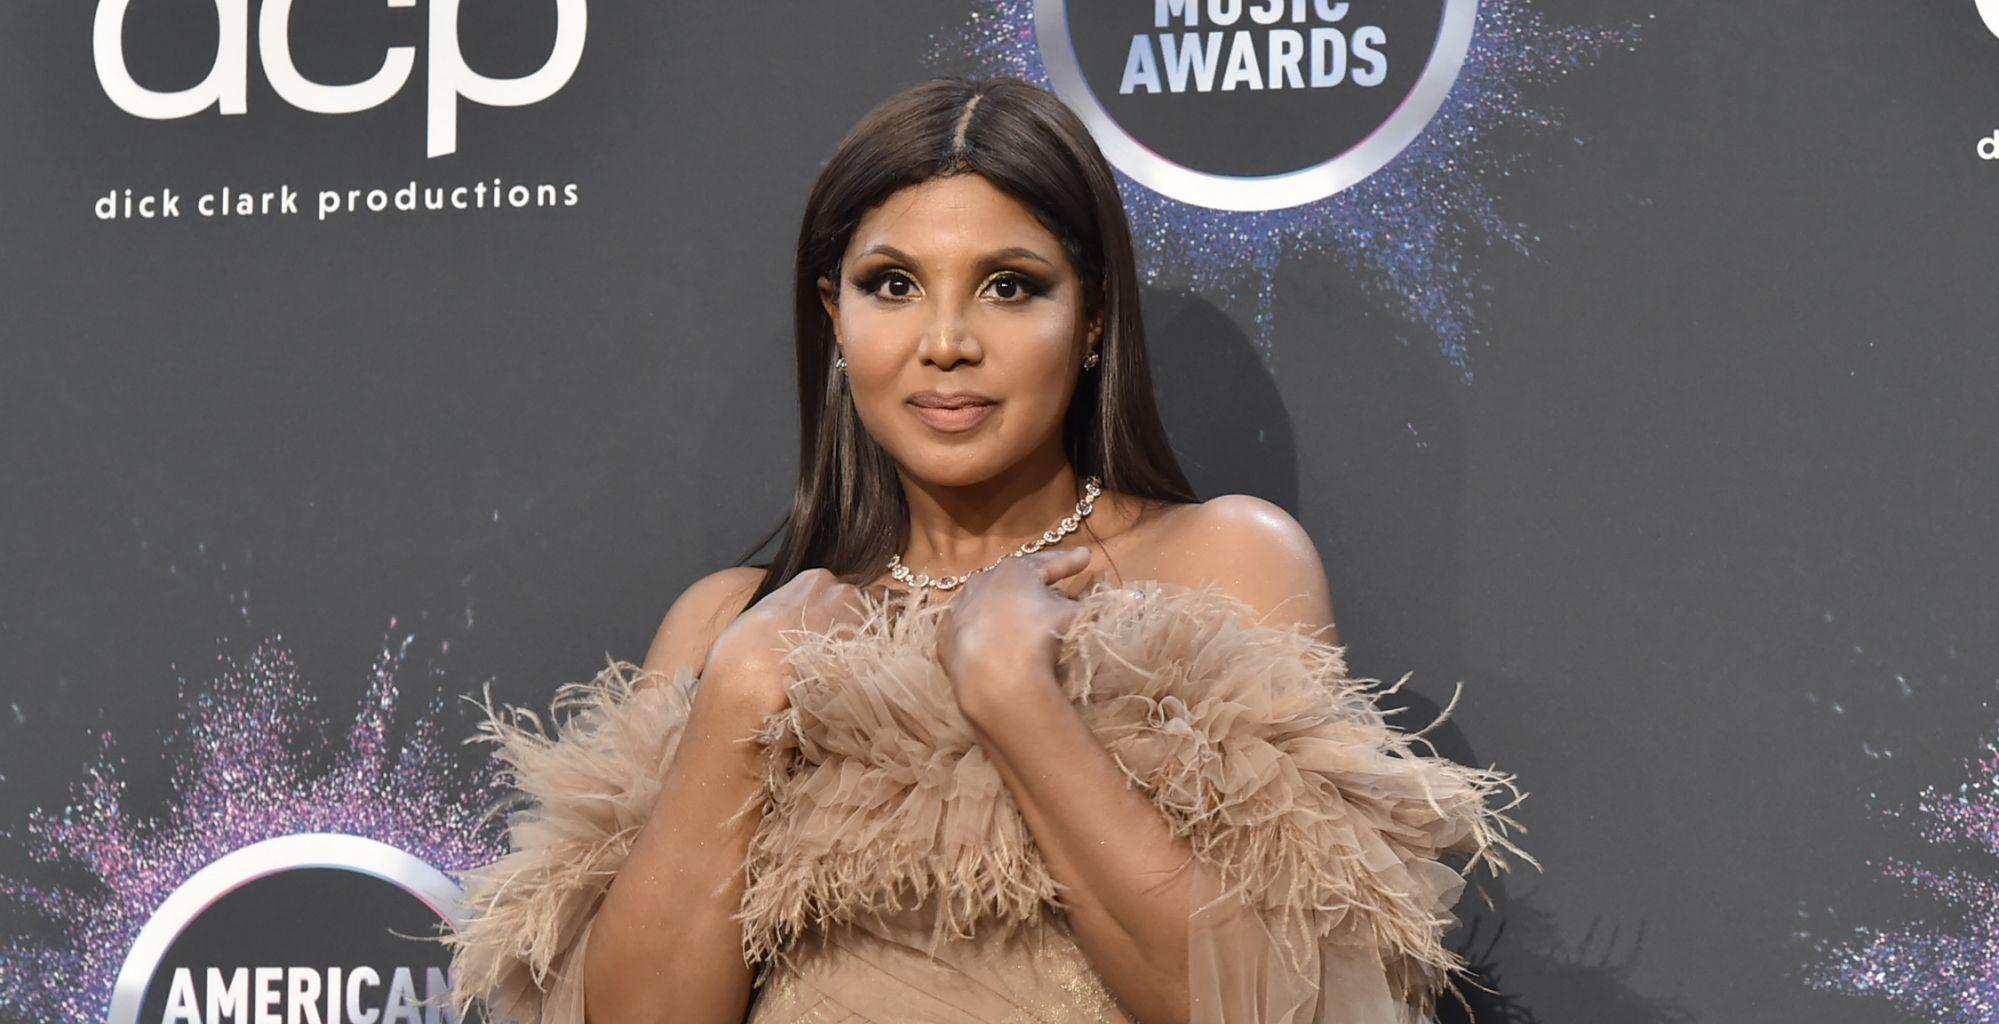 Toni Braxton Has Fans Drooling With This Photo - Check Out Her Red Revealing Dress!